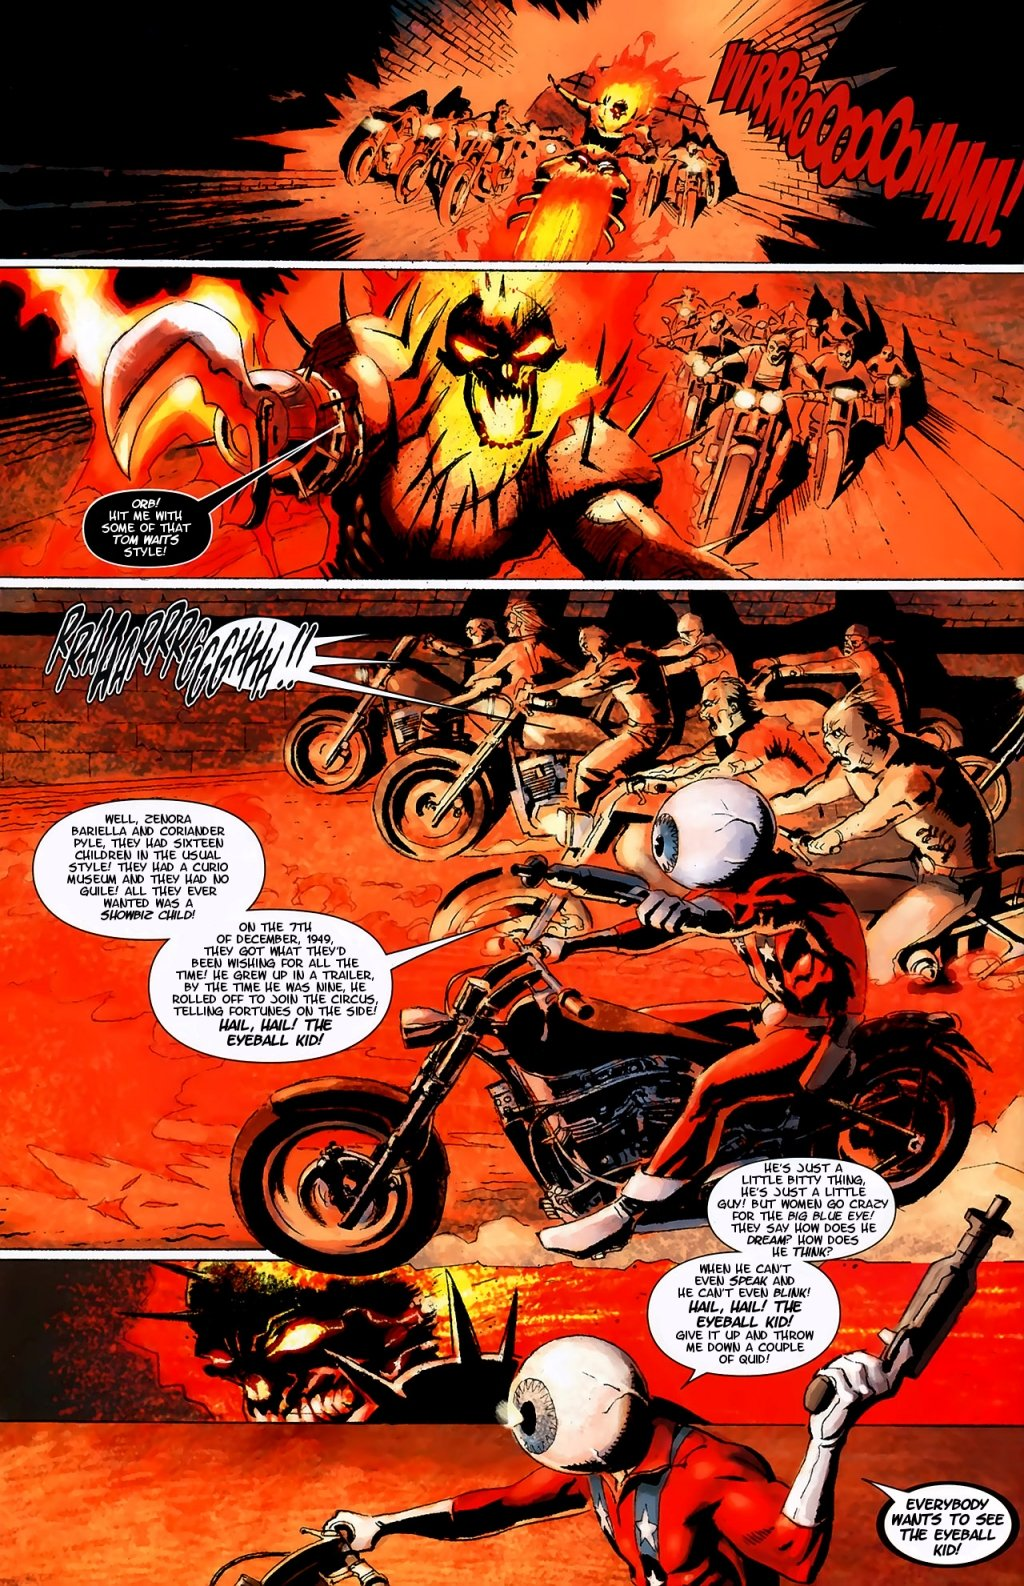 Vs Ghost Green And Ghost Rider Red Rider Rider Fire Fire Blue Fire Ghost